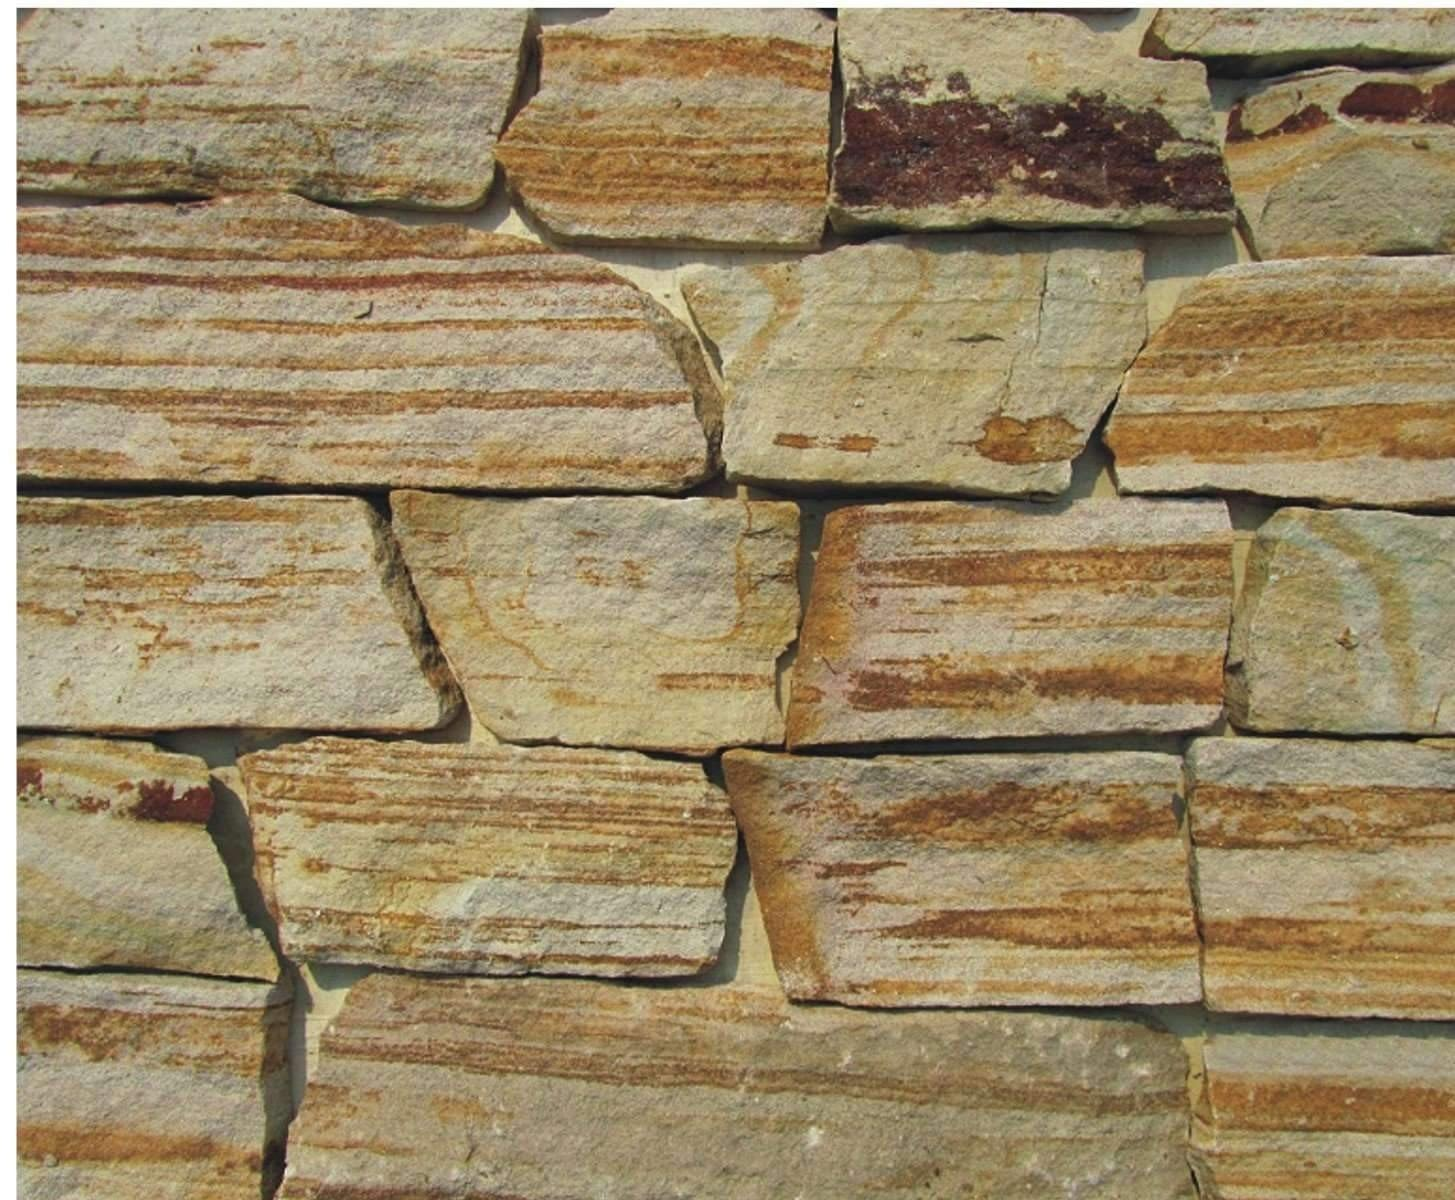 Parallel Ridge - Rough Cut Slate cheap stone veneer clearance - Discount Stones wholesale stone veneer, cheap brick veneer, cultured stone for sale